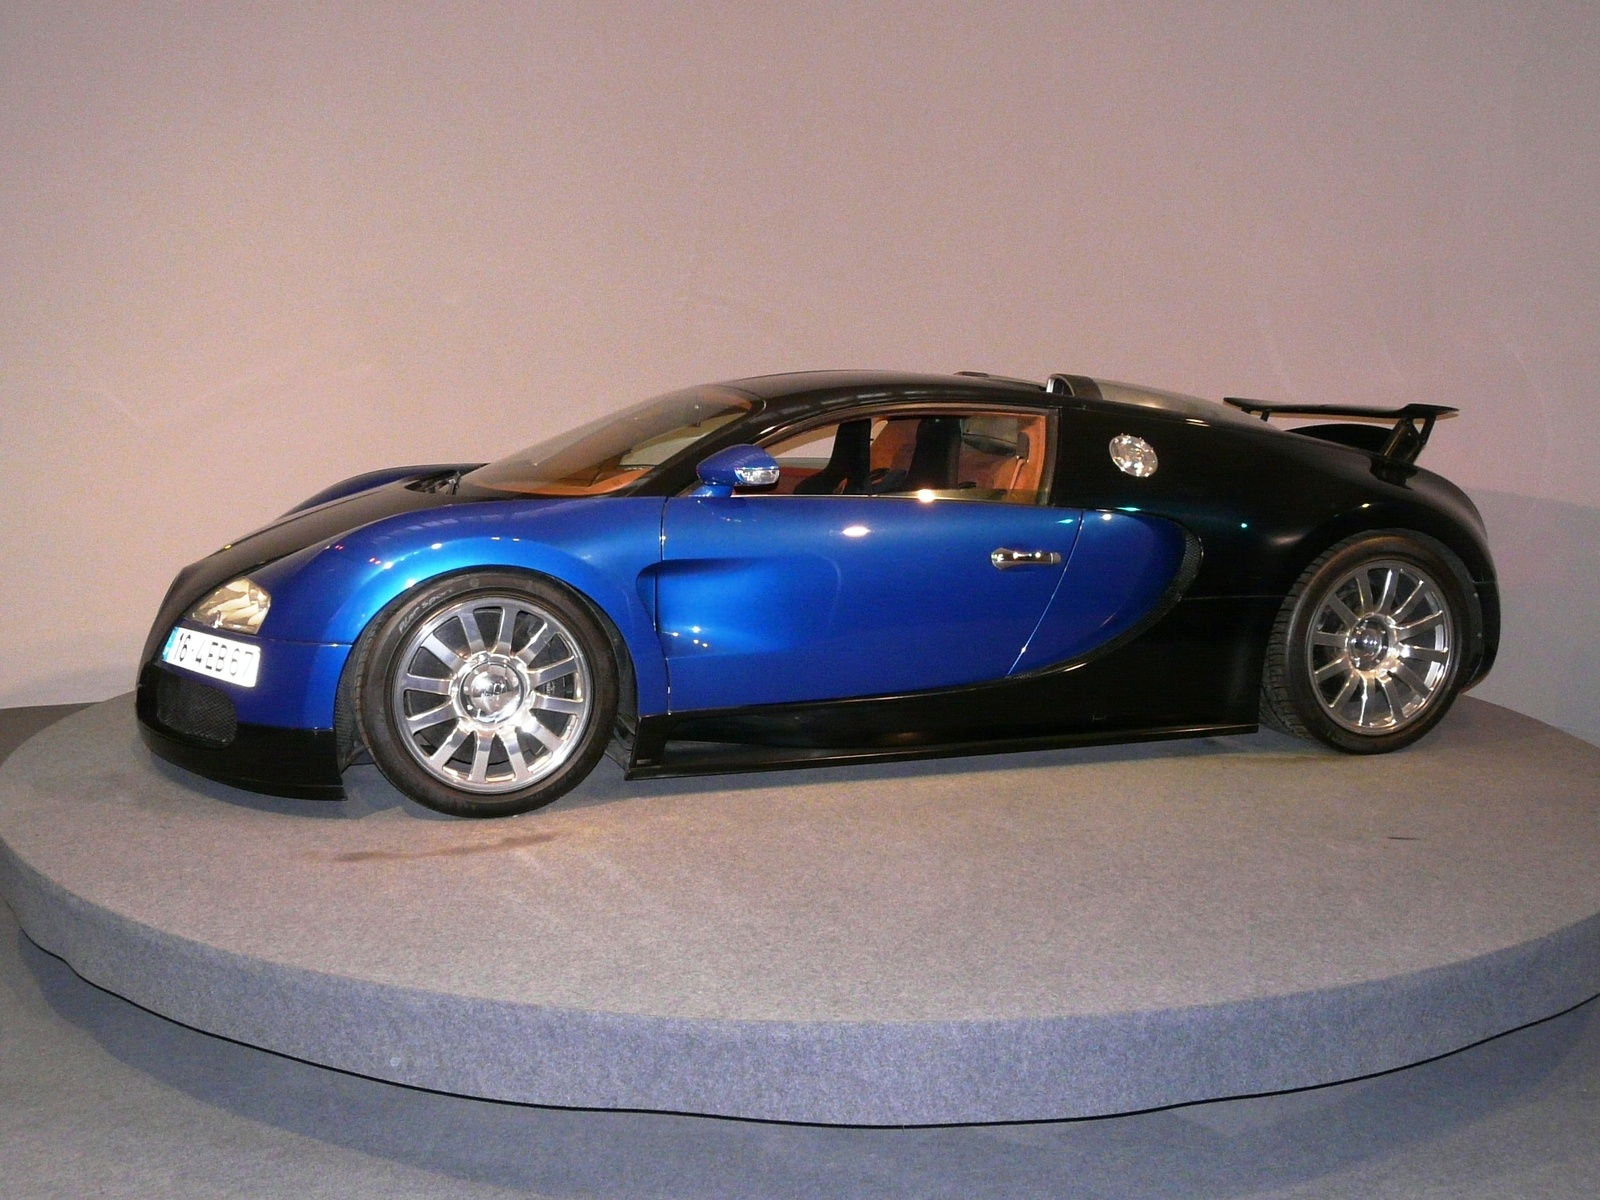 pin 2006 bugatti veyron w16 engine cutaway 1920x1440 dans. Black Bedroom Furniture Sets. Home Design Ideas